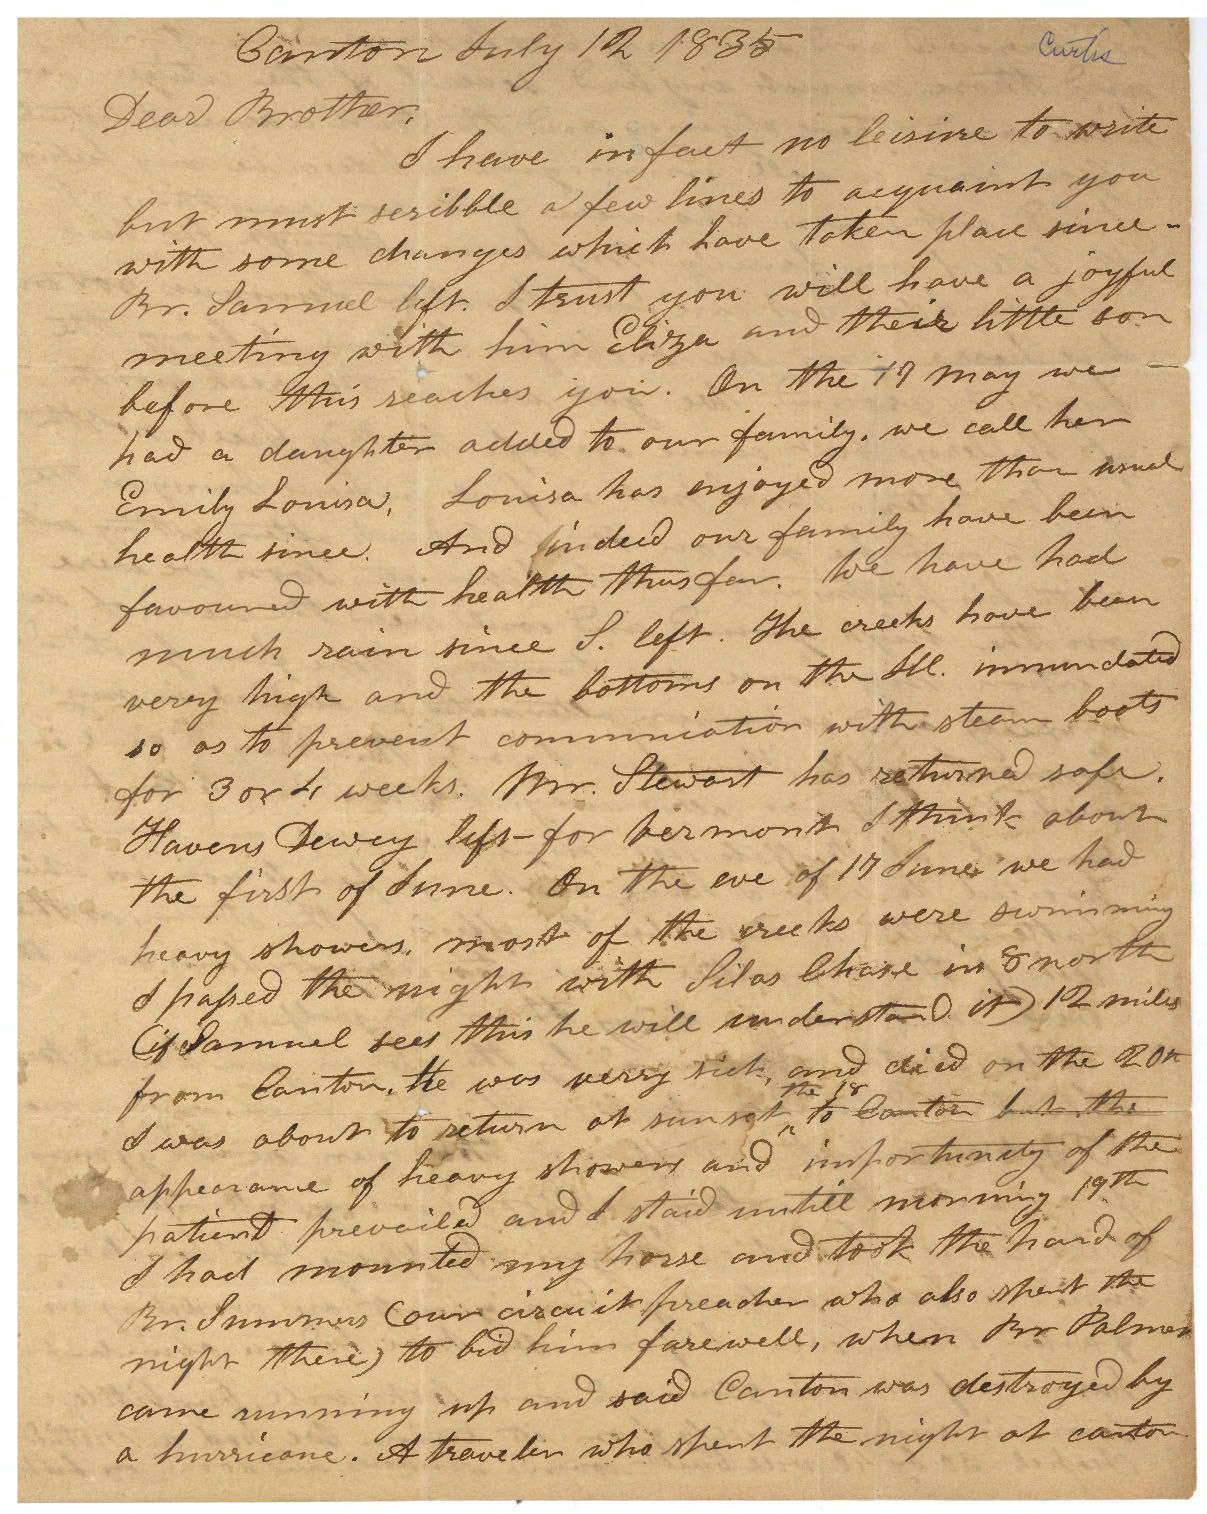 Letter from Rev. Lathrop Curtis to Rev. Otis Curtis regarding a tornado that hit Canton, Illinois, July 12, 1835